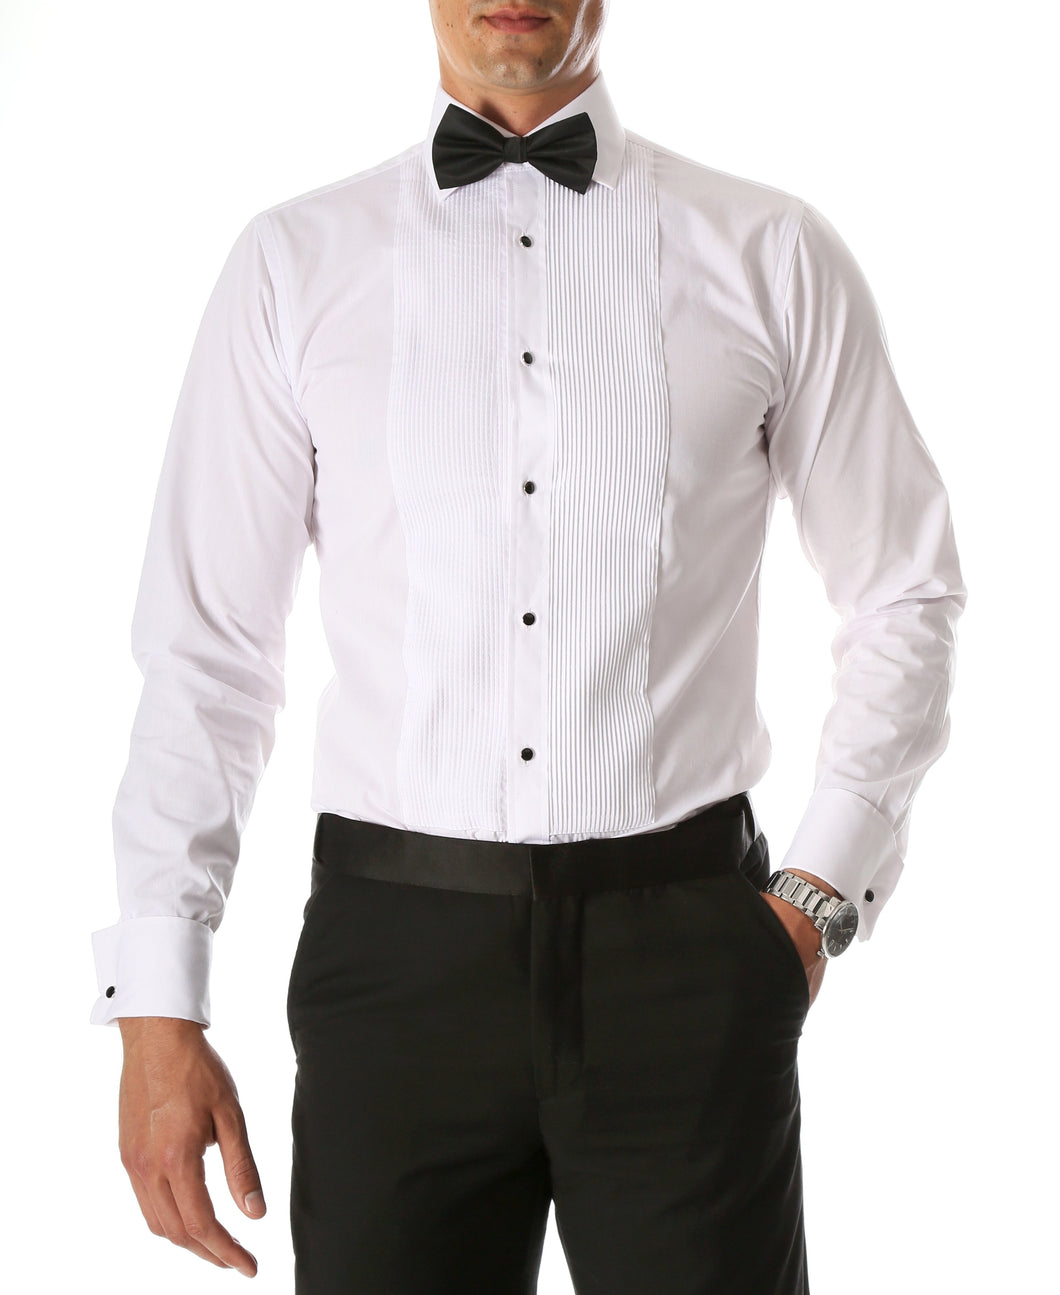 Ferrecci Men's Paris White Regular Fit Lay Down Collar Pleated Tuxedo Shirt - Ferrecci USA